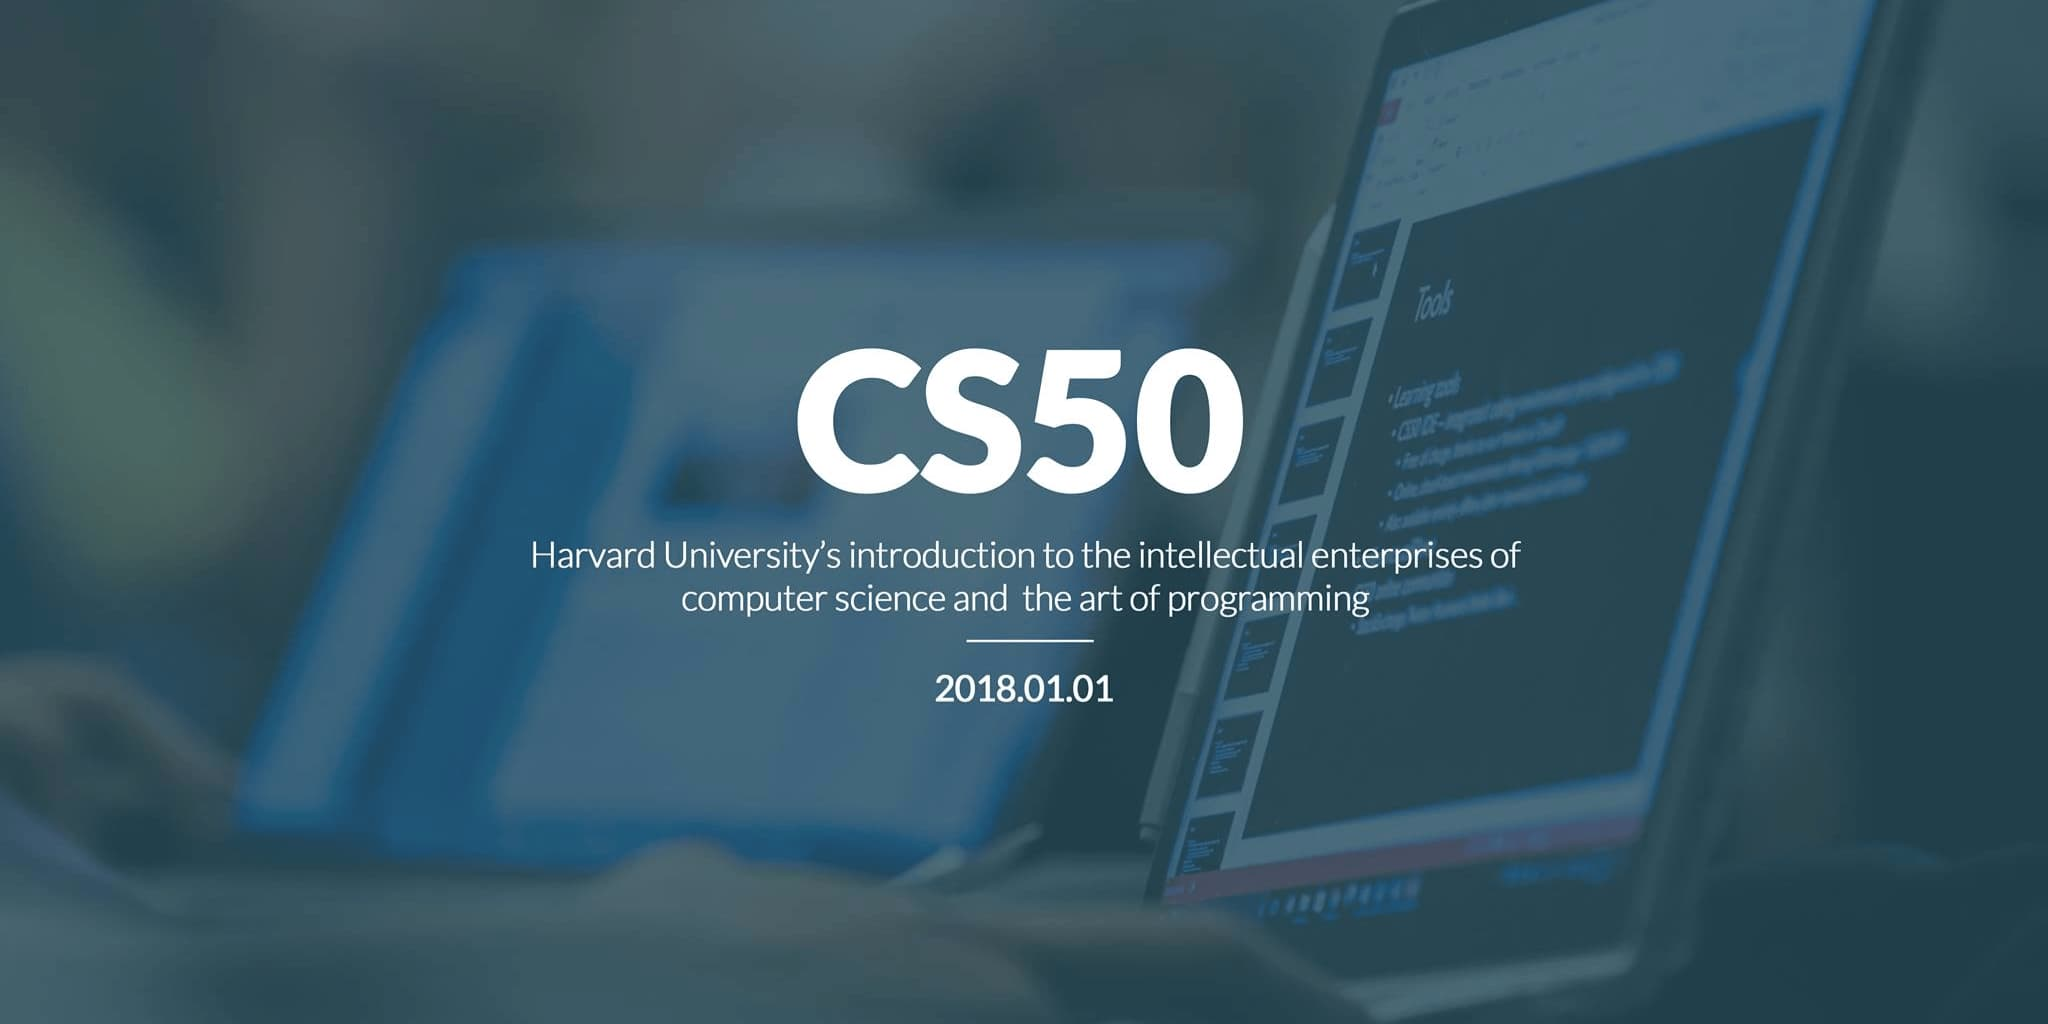 Turing Students CS50